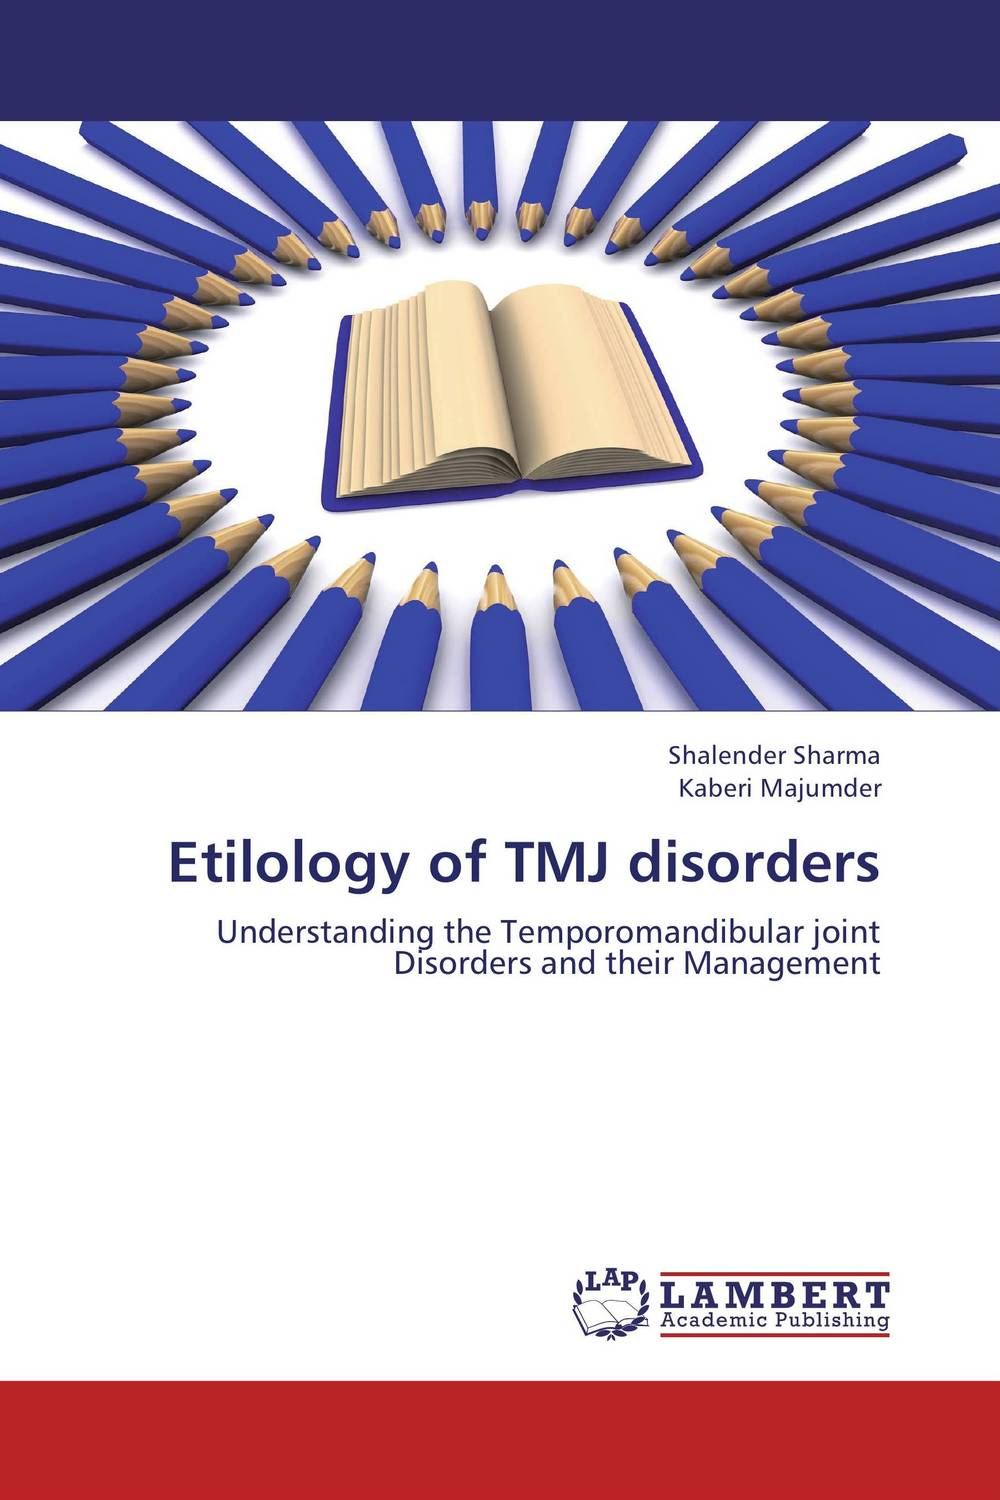 Etilology of TMJ disorders anatomy of a disappearance